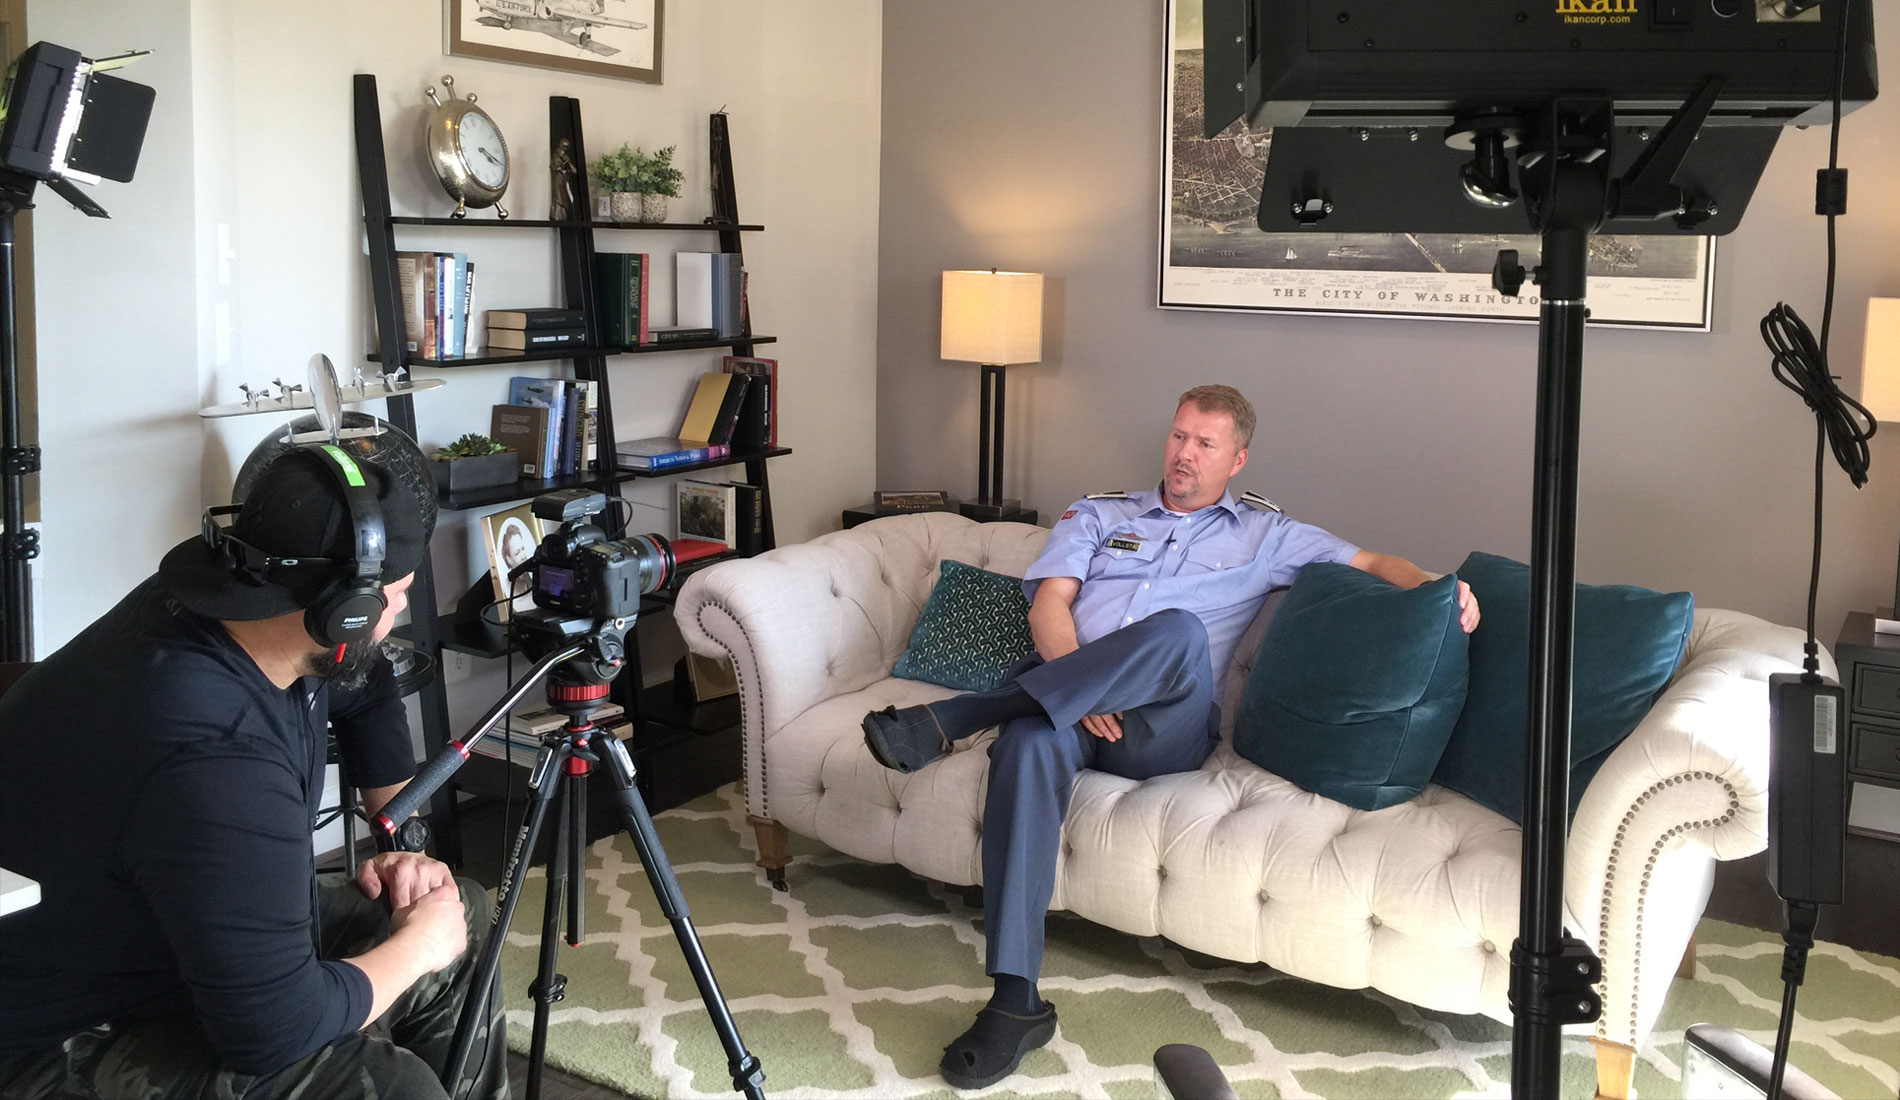 Videography Marketing, behind the scenes of taping, man on couch